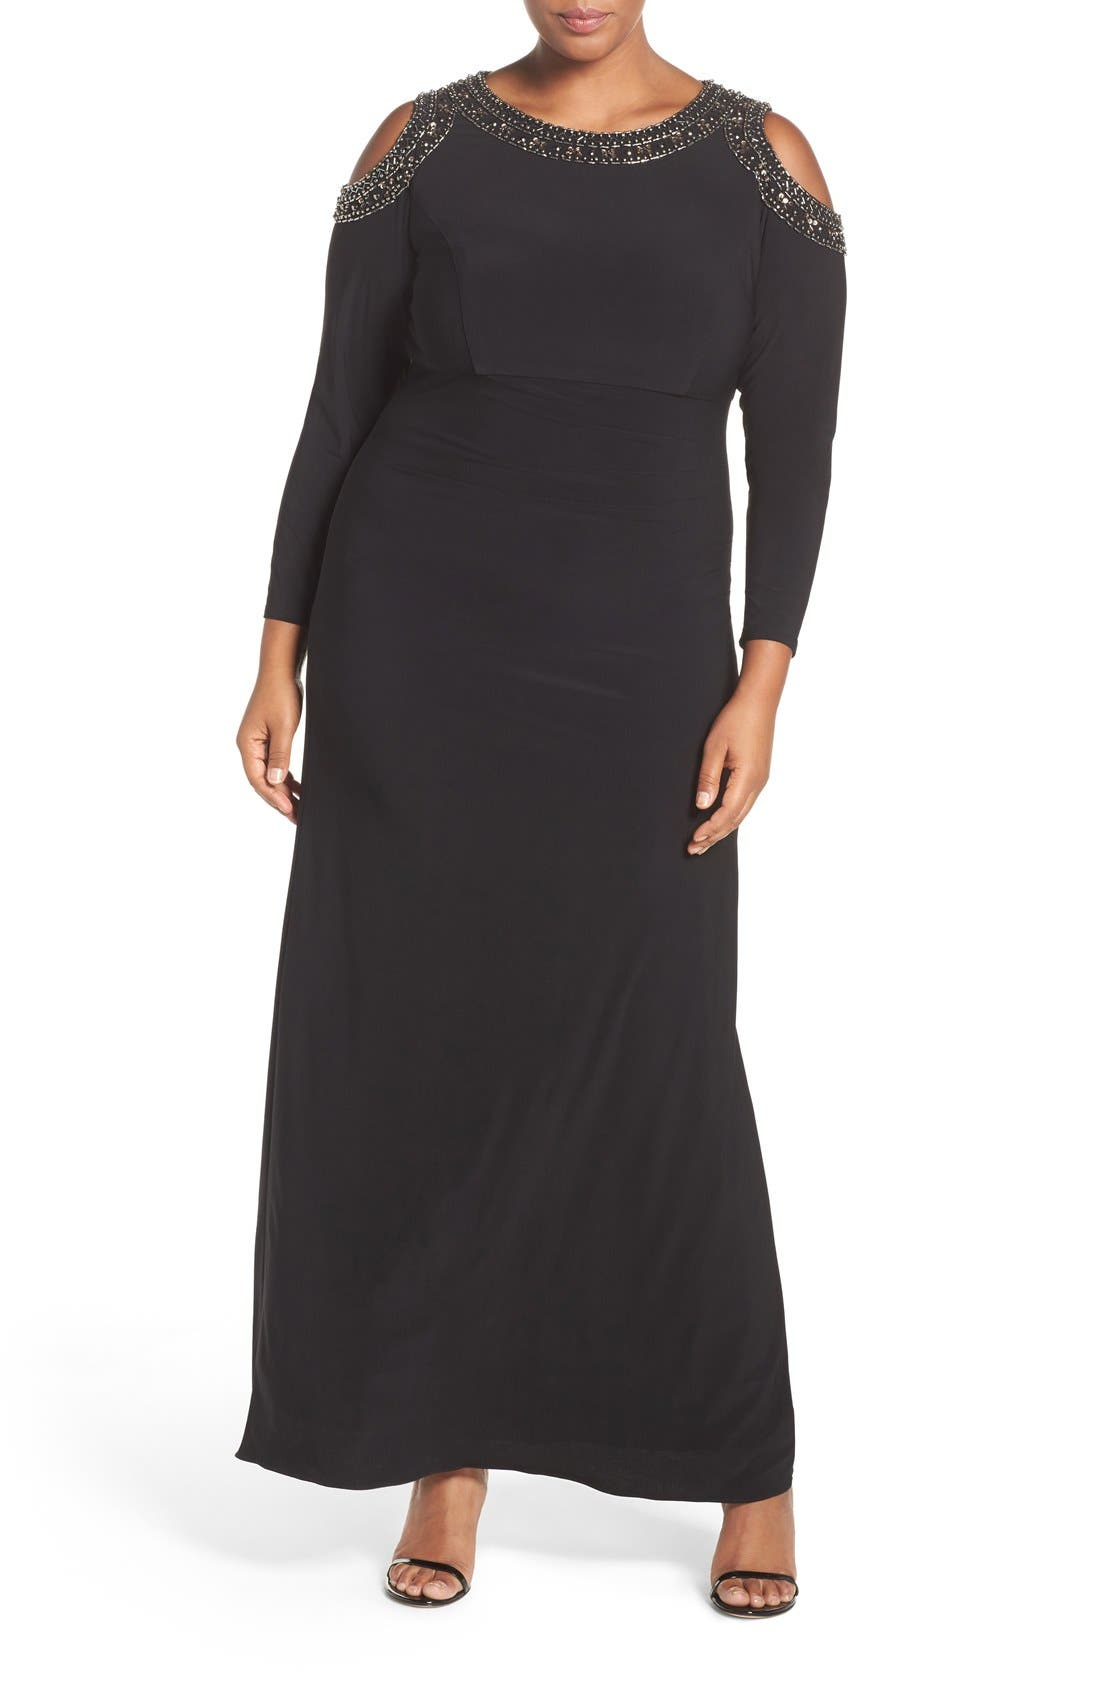 Alternate Image 1 Selected - Xscape Embellished Cold Shoulder Shirred Jersey Gown (Plus Size)